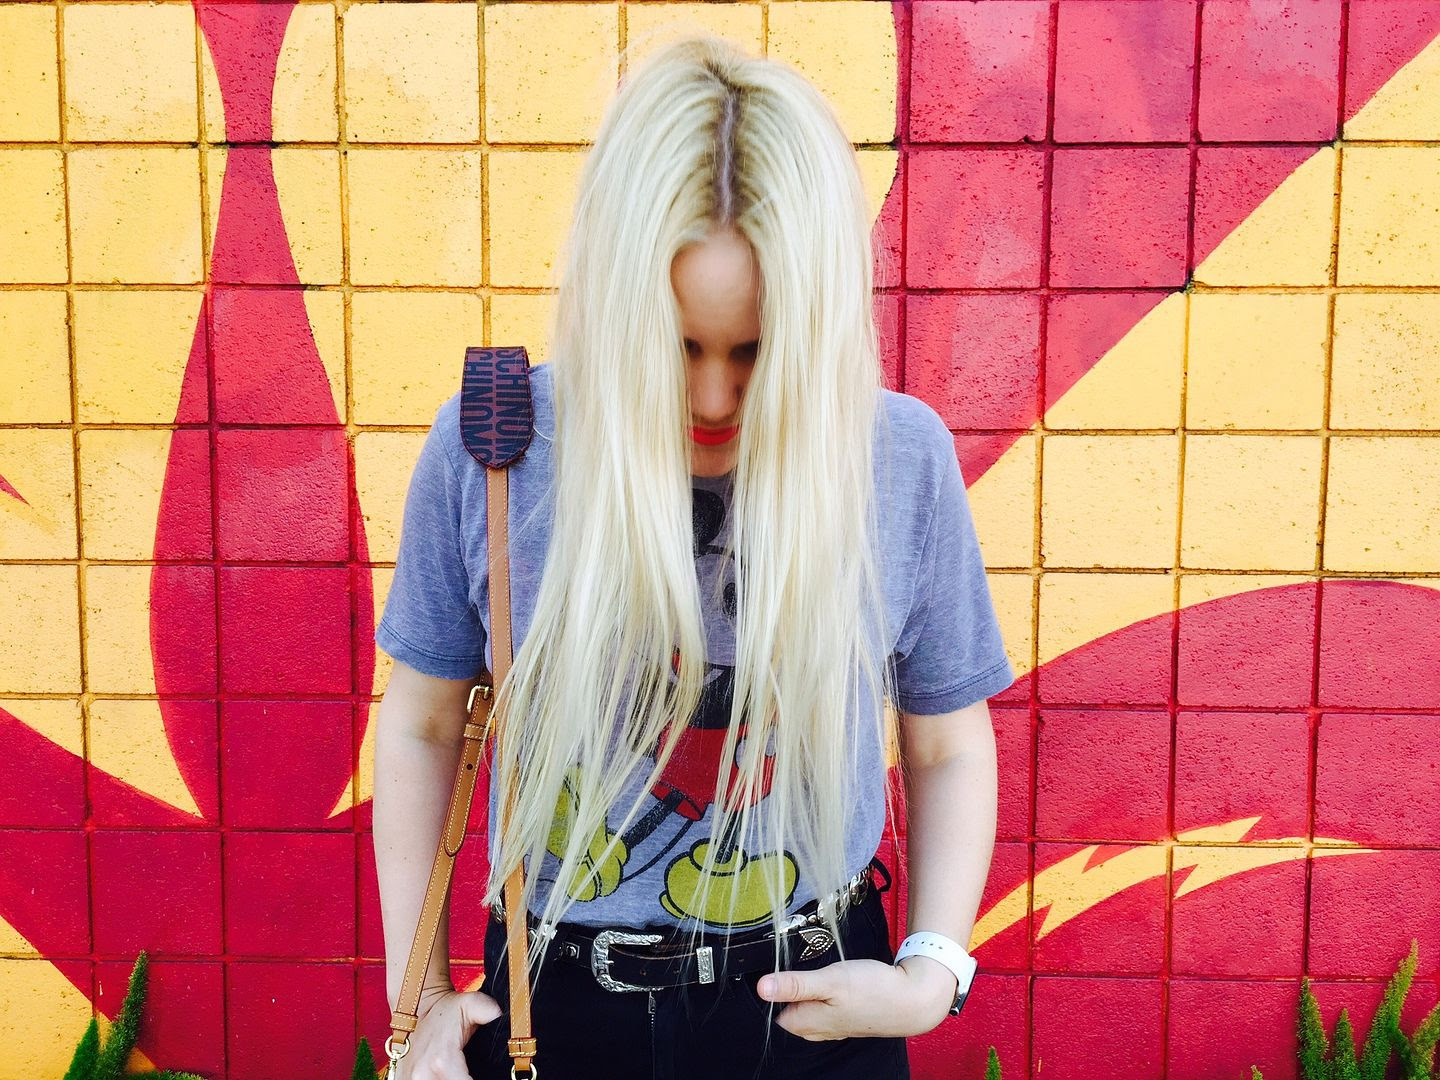 photo blondehair-mickey-moschino-bag-losangeles-torontobloggers_zpsjvqwsvvy.jpg